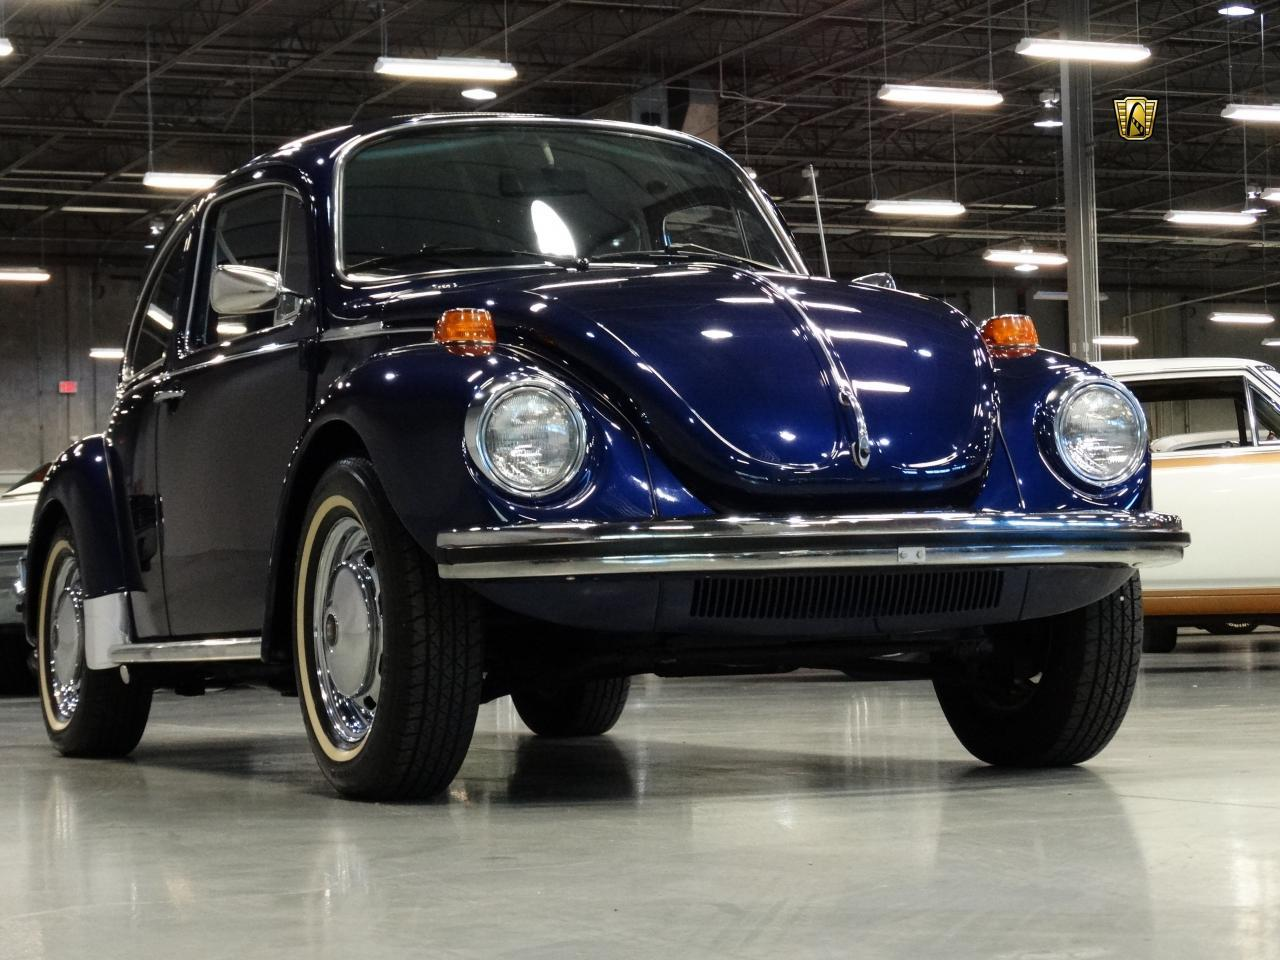 Large Picture of '73 Volkswagen Beetle - $20,595.00 Offered by Gateway Classic Cars - Orlando - KDKC